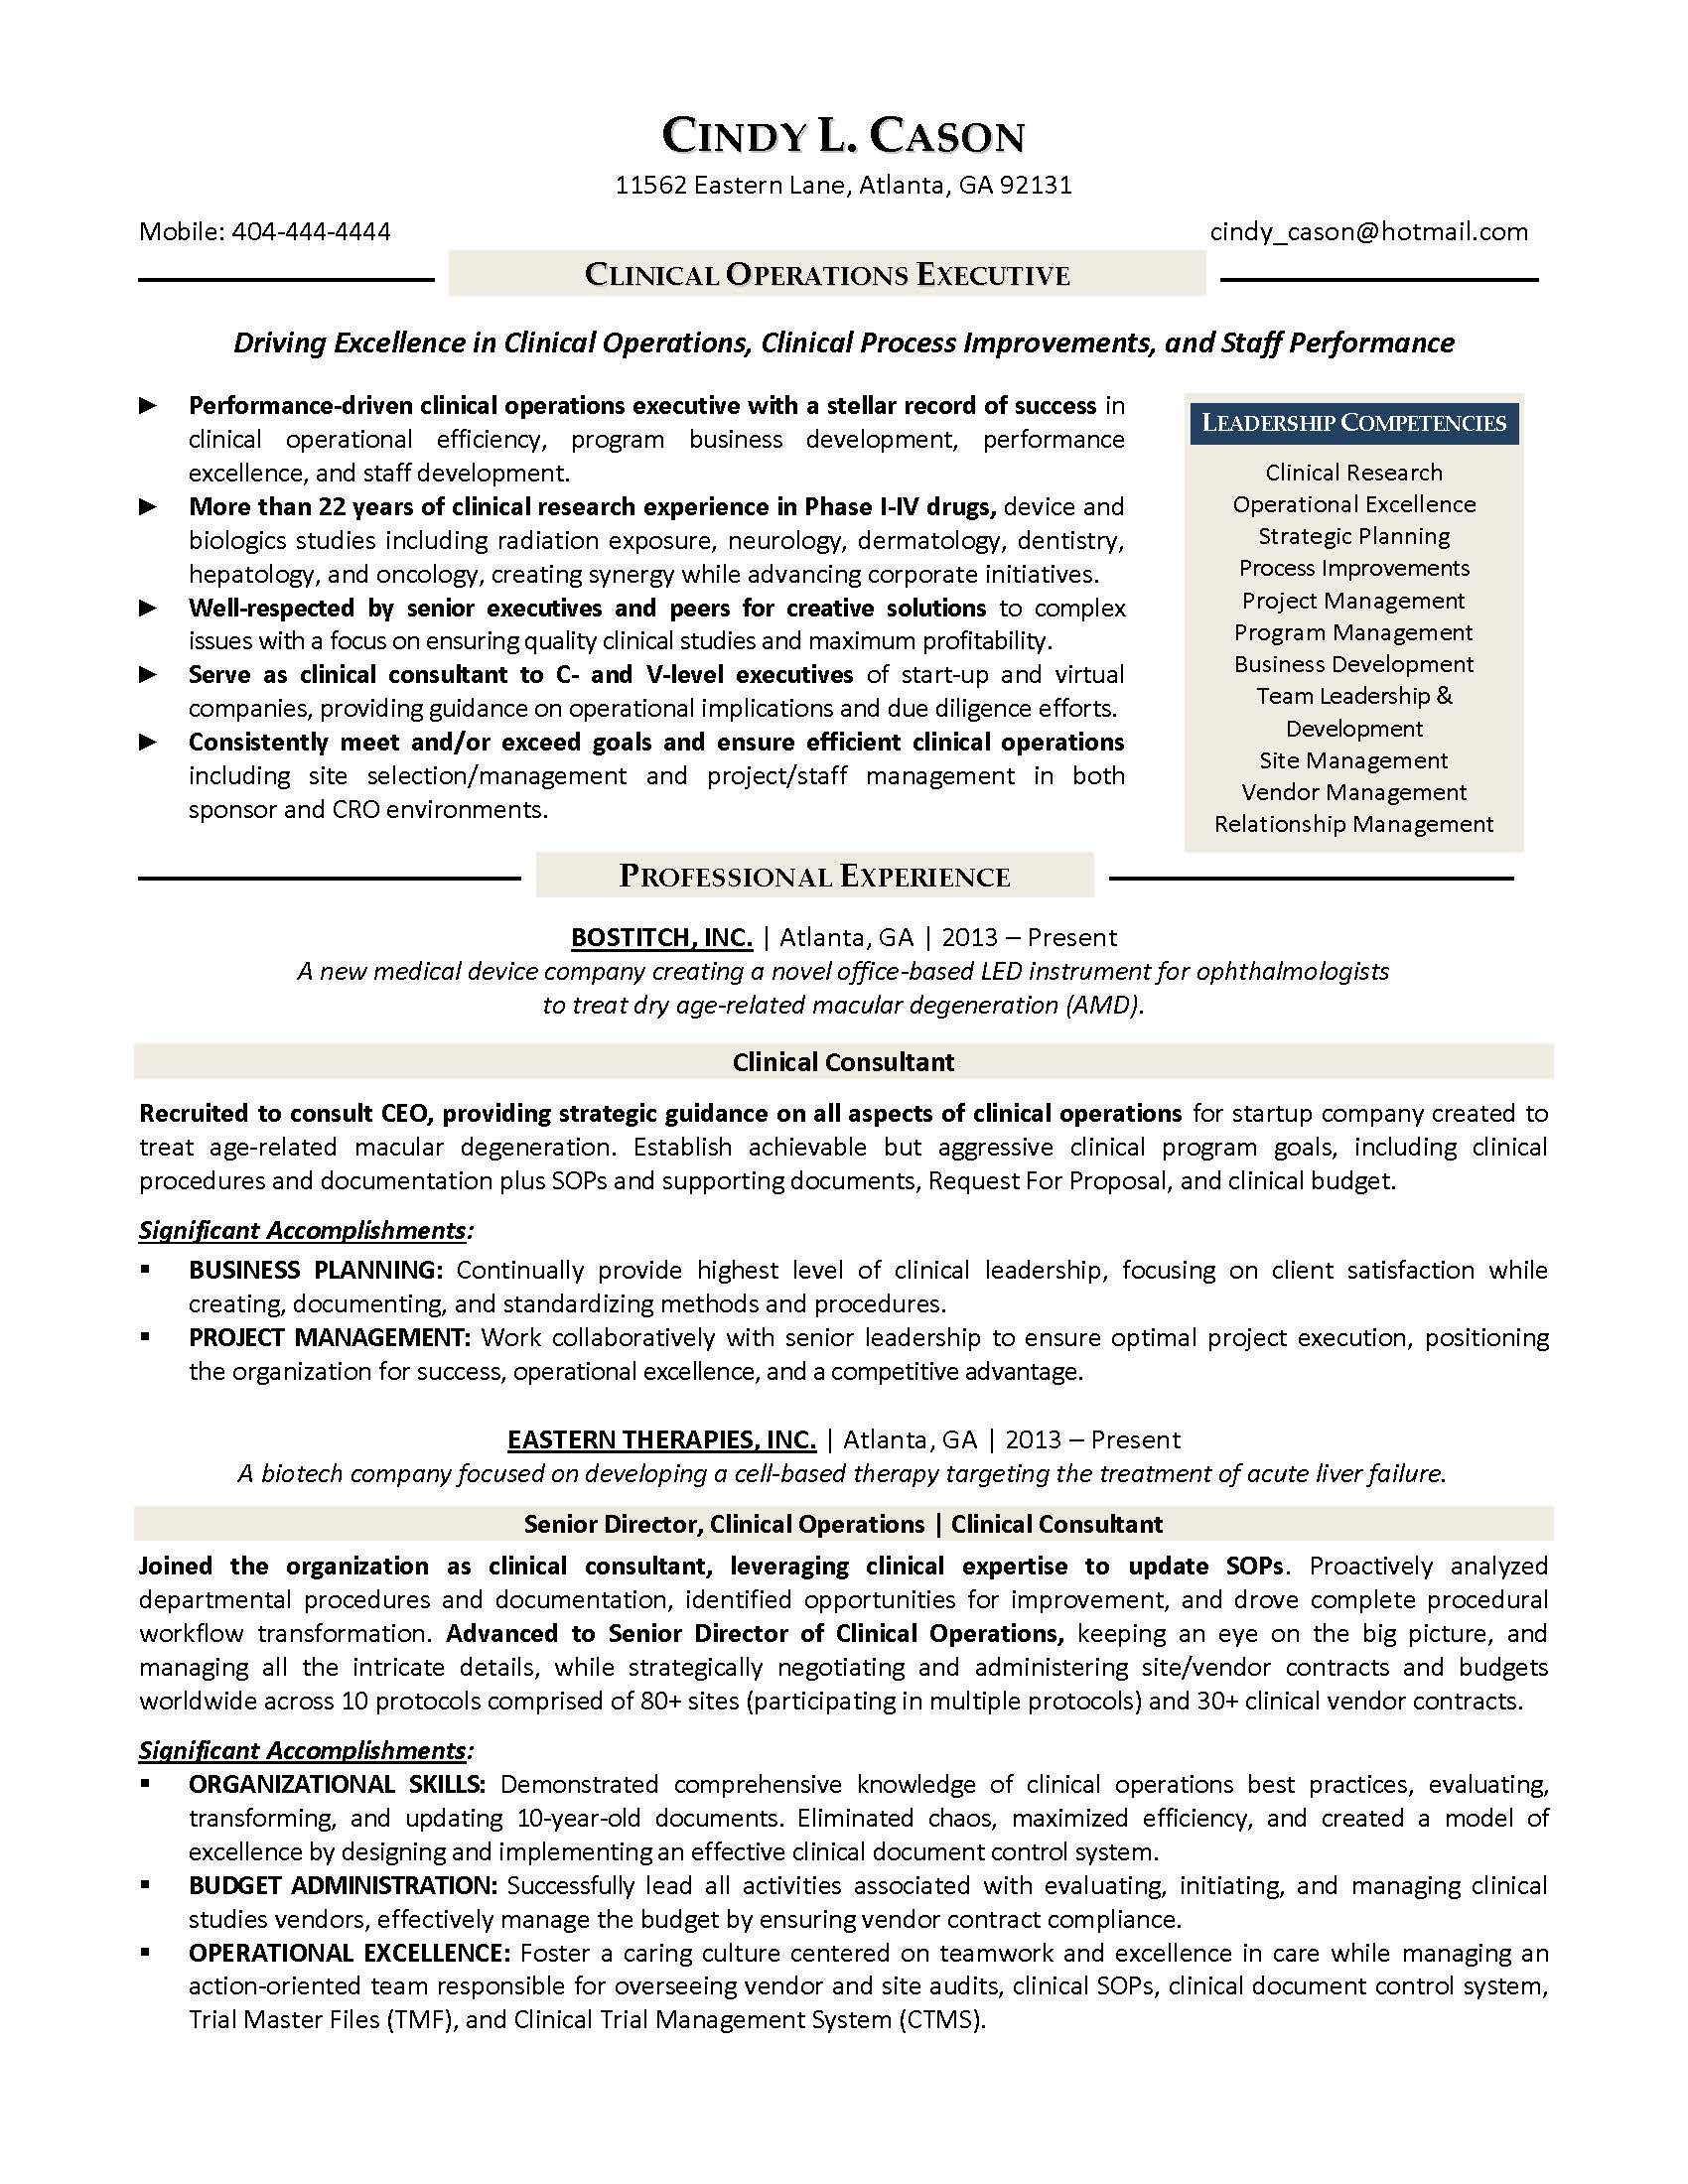 Clinical Operations Executive Resume Sample, Provided By Elite Resume  Writing Services  Resume Company